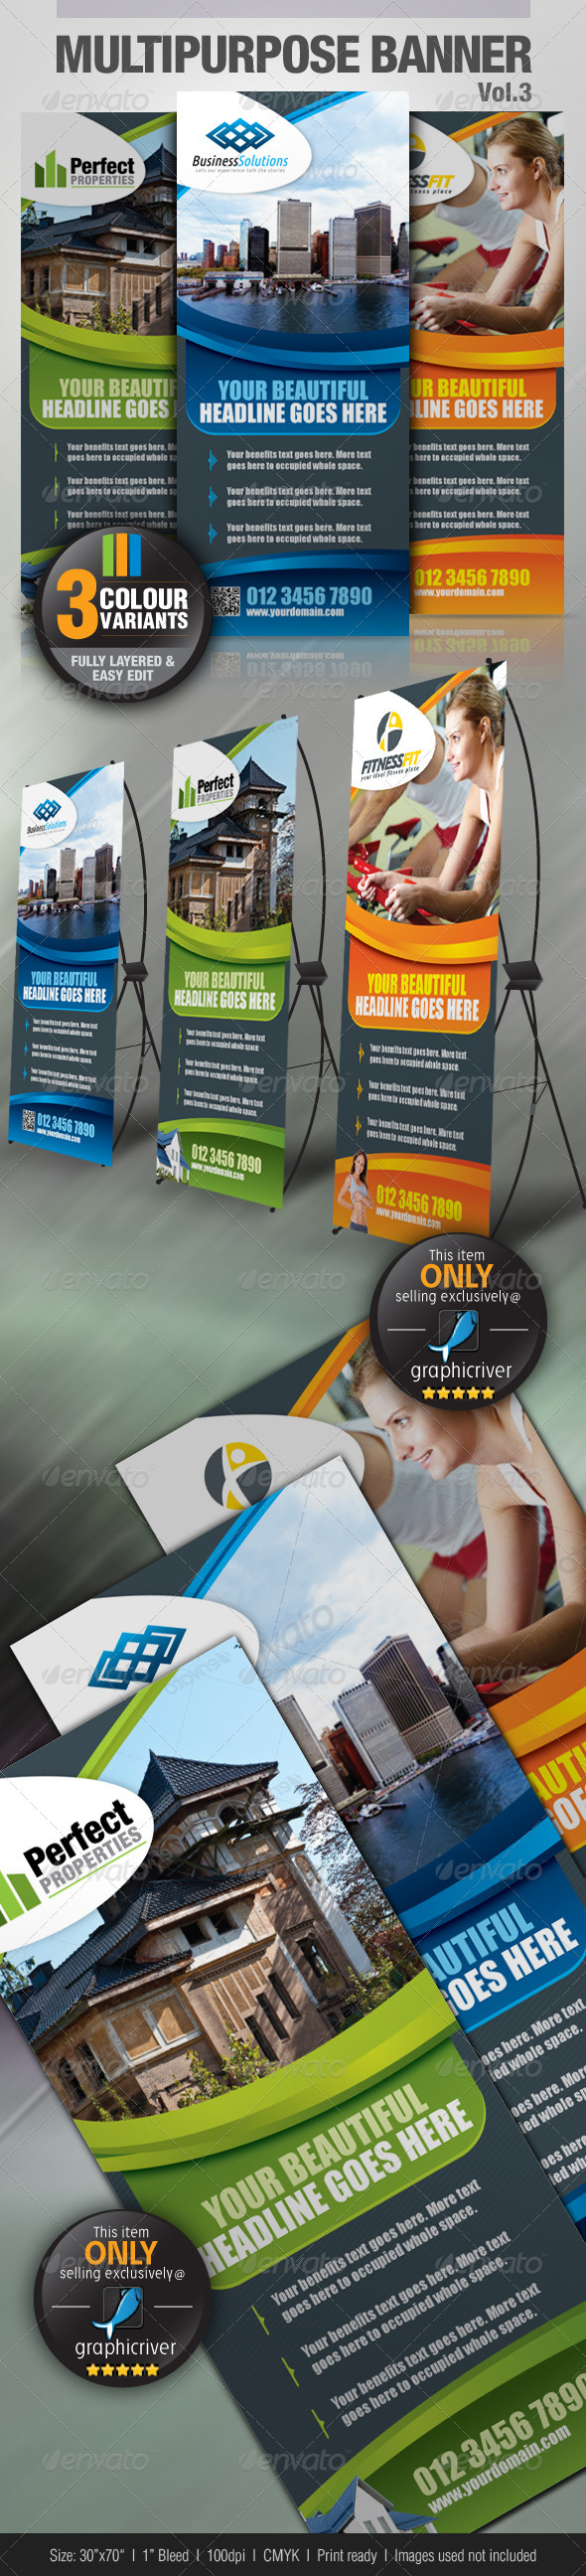 Multipurpose Banner Vol.3 - Signage Print Templates